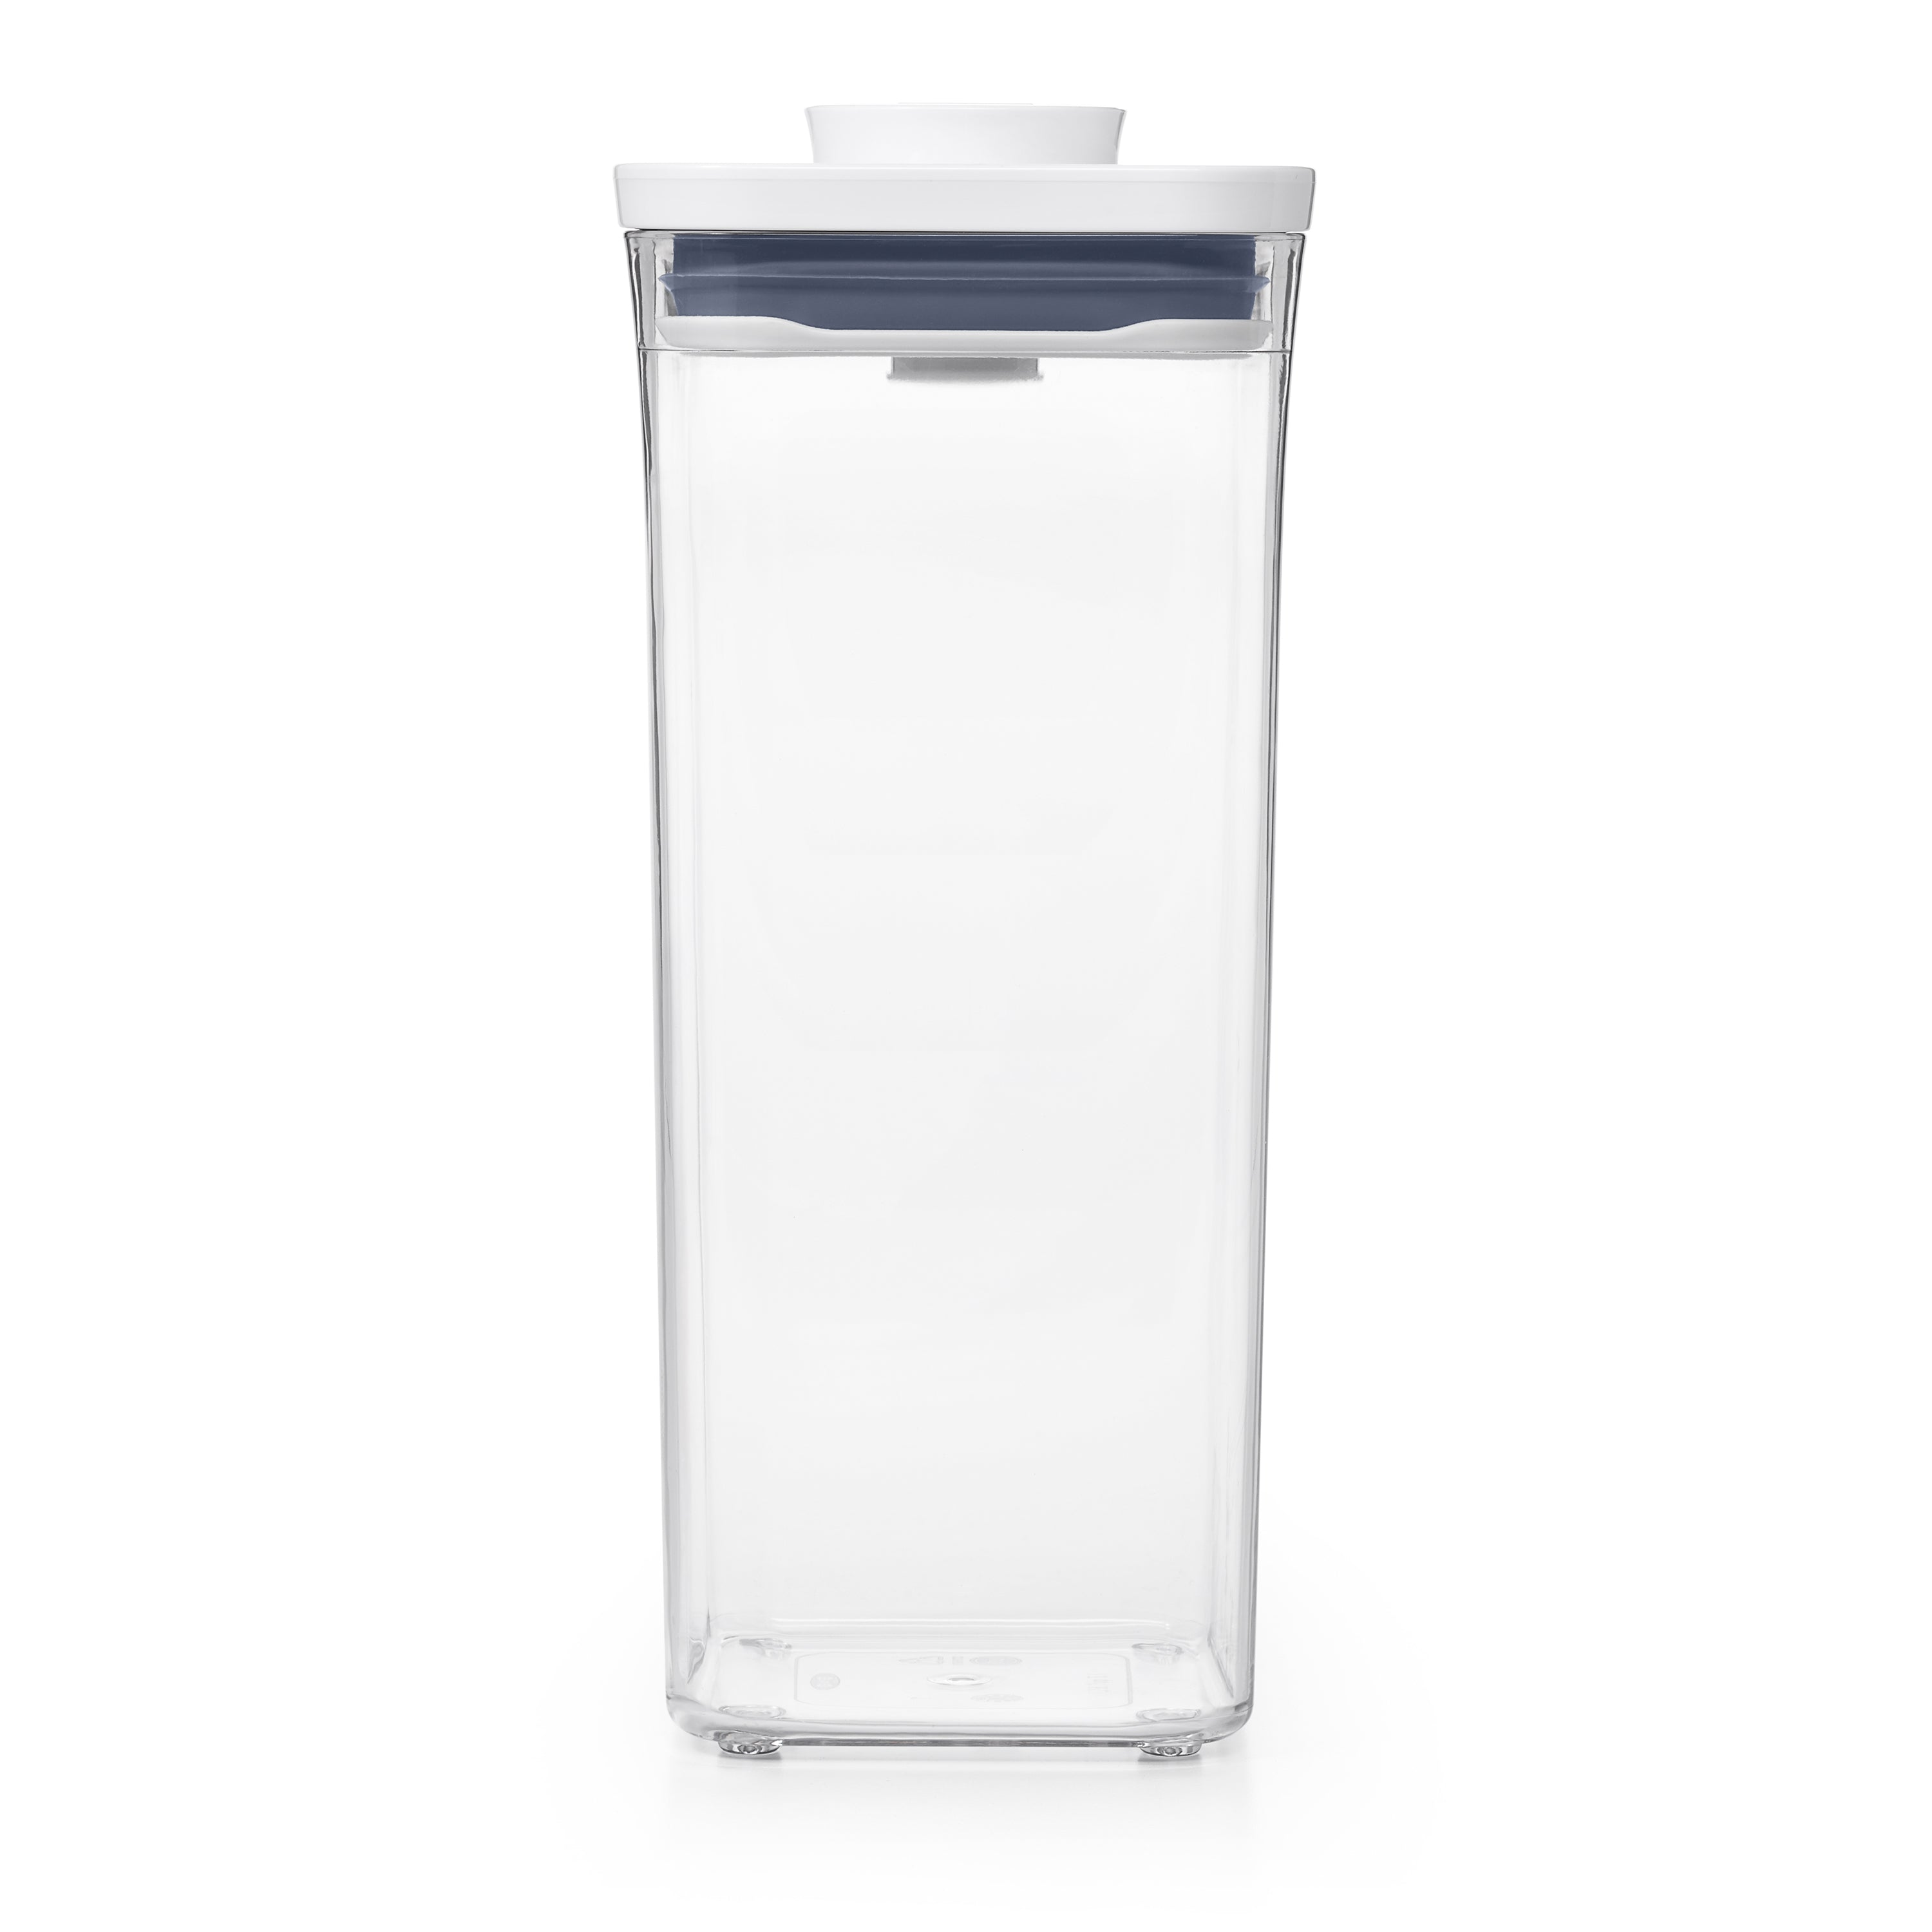 OXO GG POP 2.0 SMALL SQUARE MEDIUM - (1.5 QT/ 1.4 L)